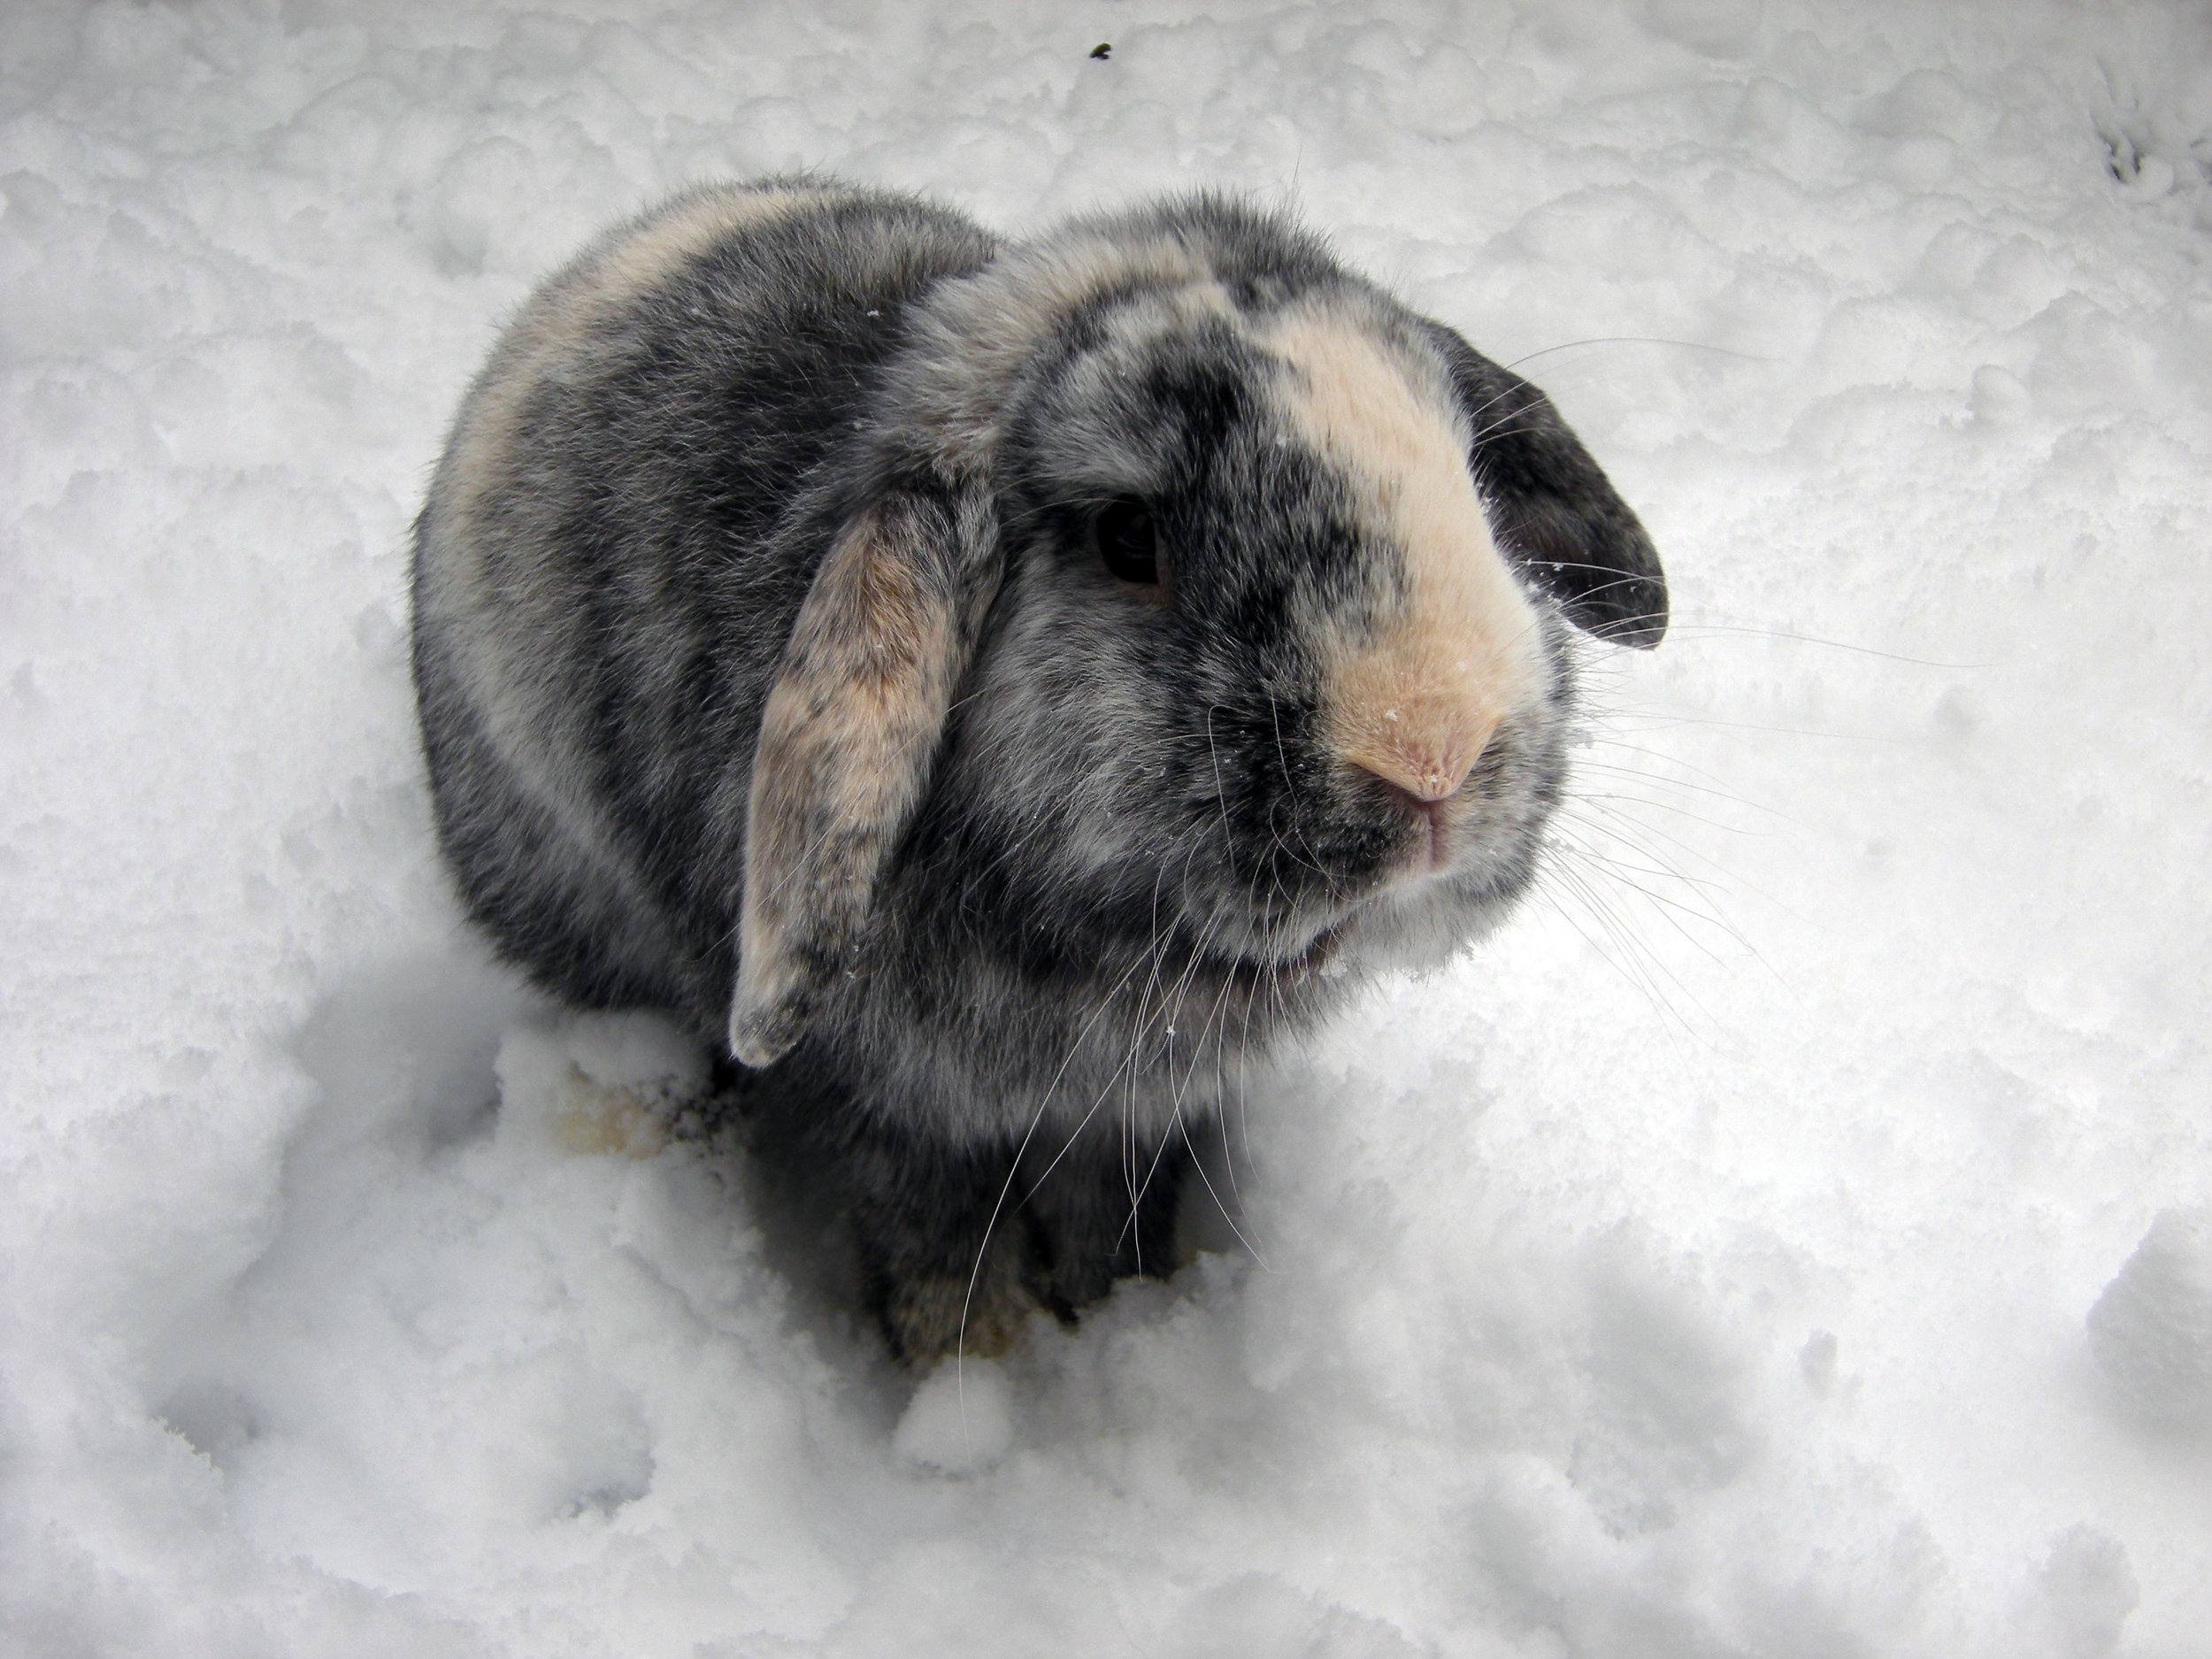 Bunny Isn't Sure What He Thinks About This Snow